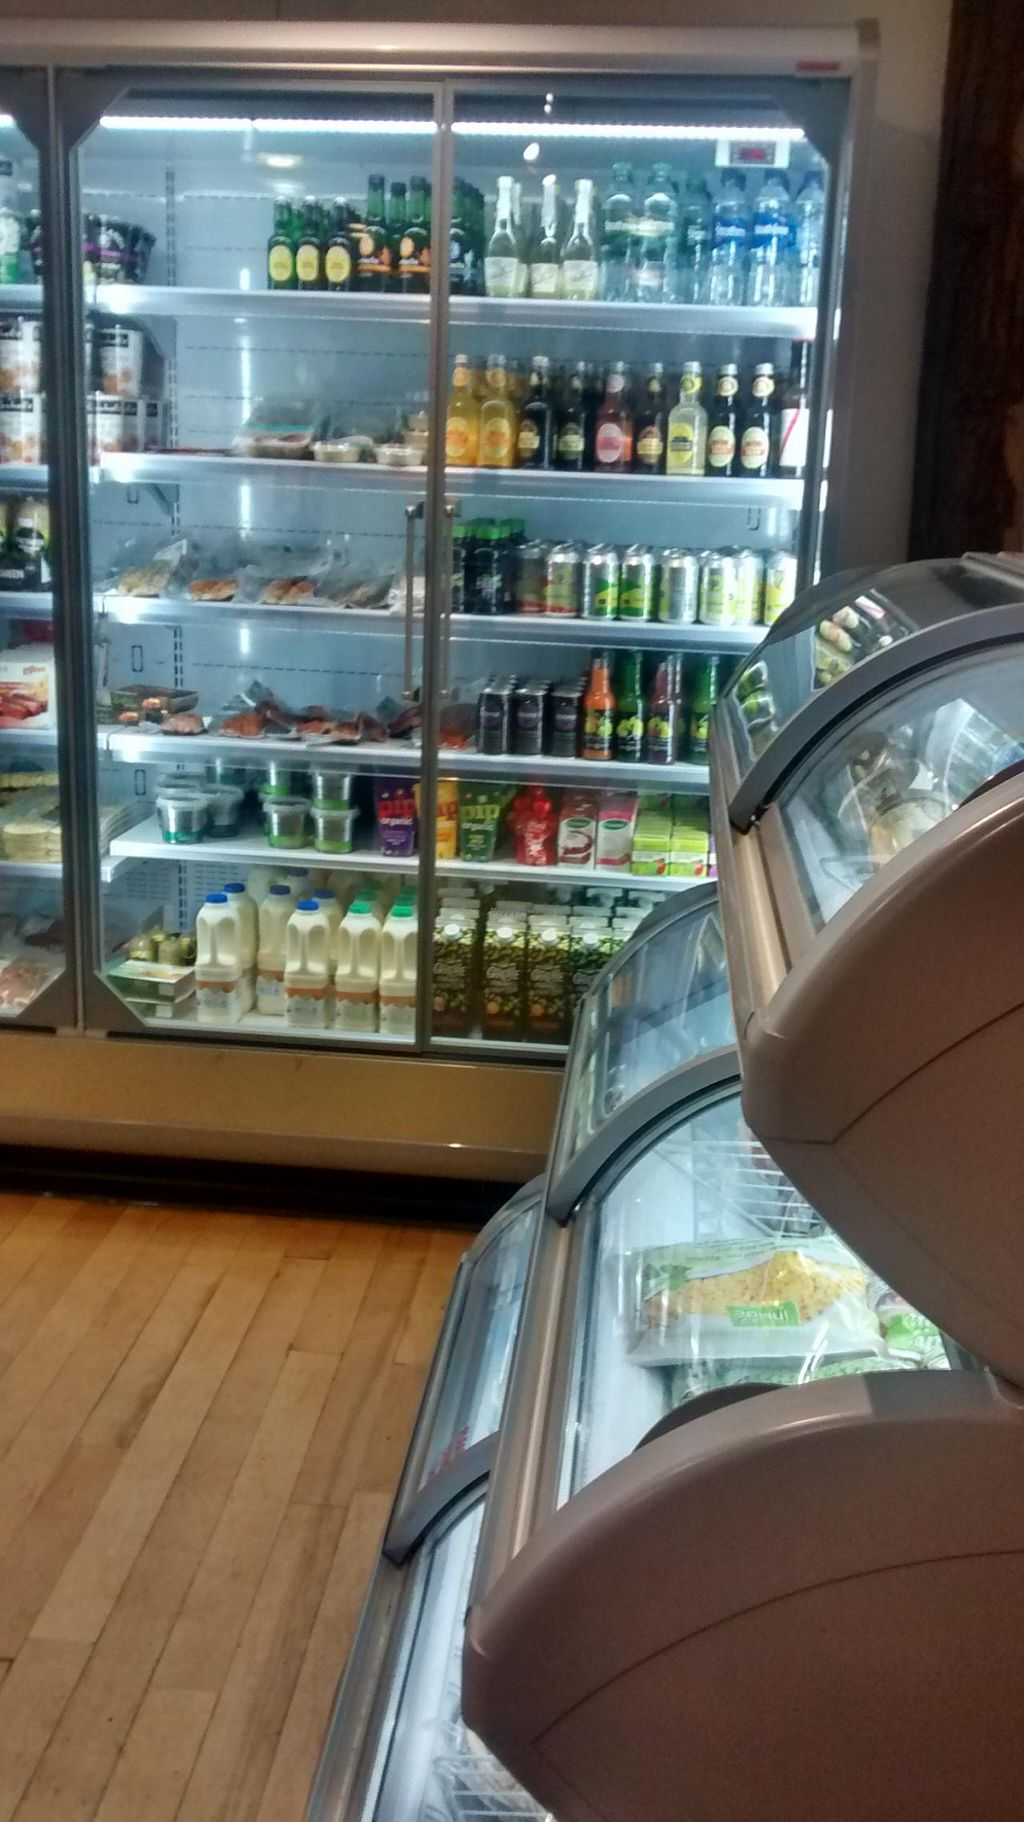 """Photo of Pillars of Hercules Organic Farm Shop and Cafe  by <a href=""""/members/profile/craigmc"""">craigmc</a> <br/>Organic juices and meat. Boo <br/> April 7, 2015  - <a href='/contact/abuse/image/26387/98192'>Report</a>"""